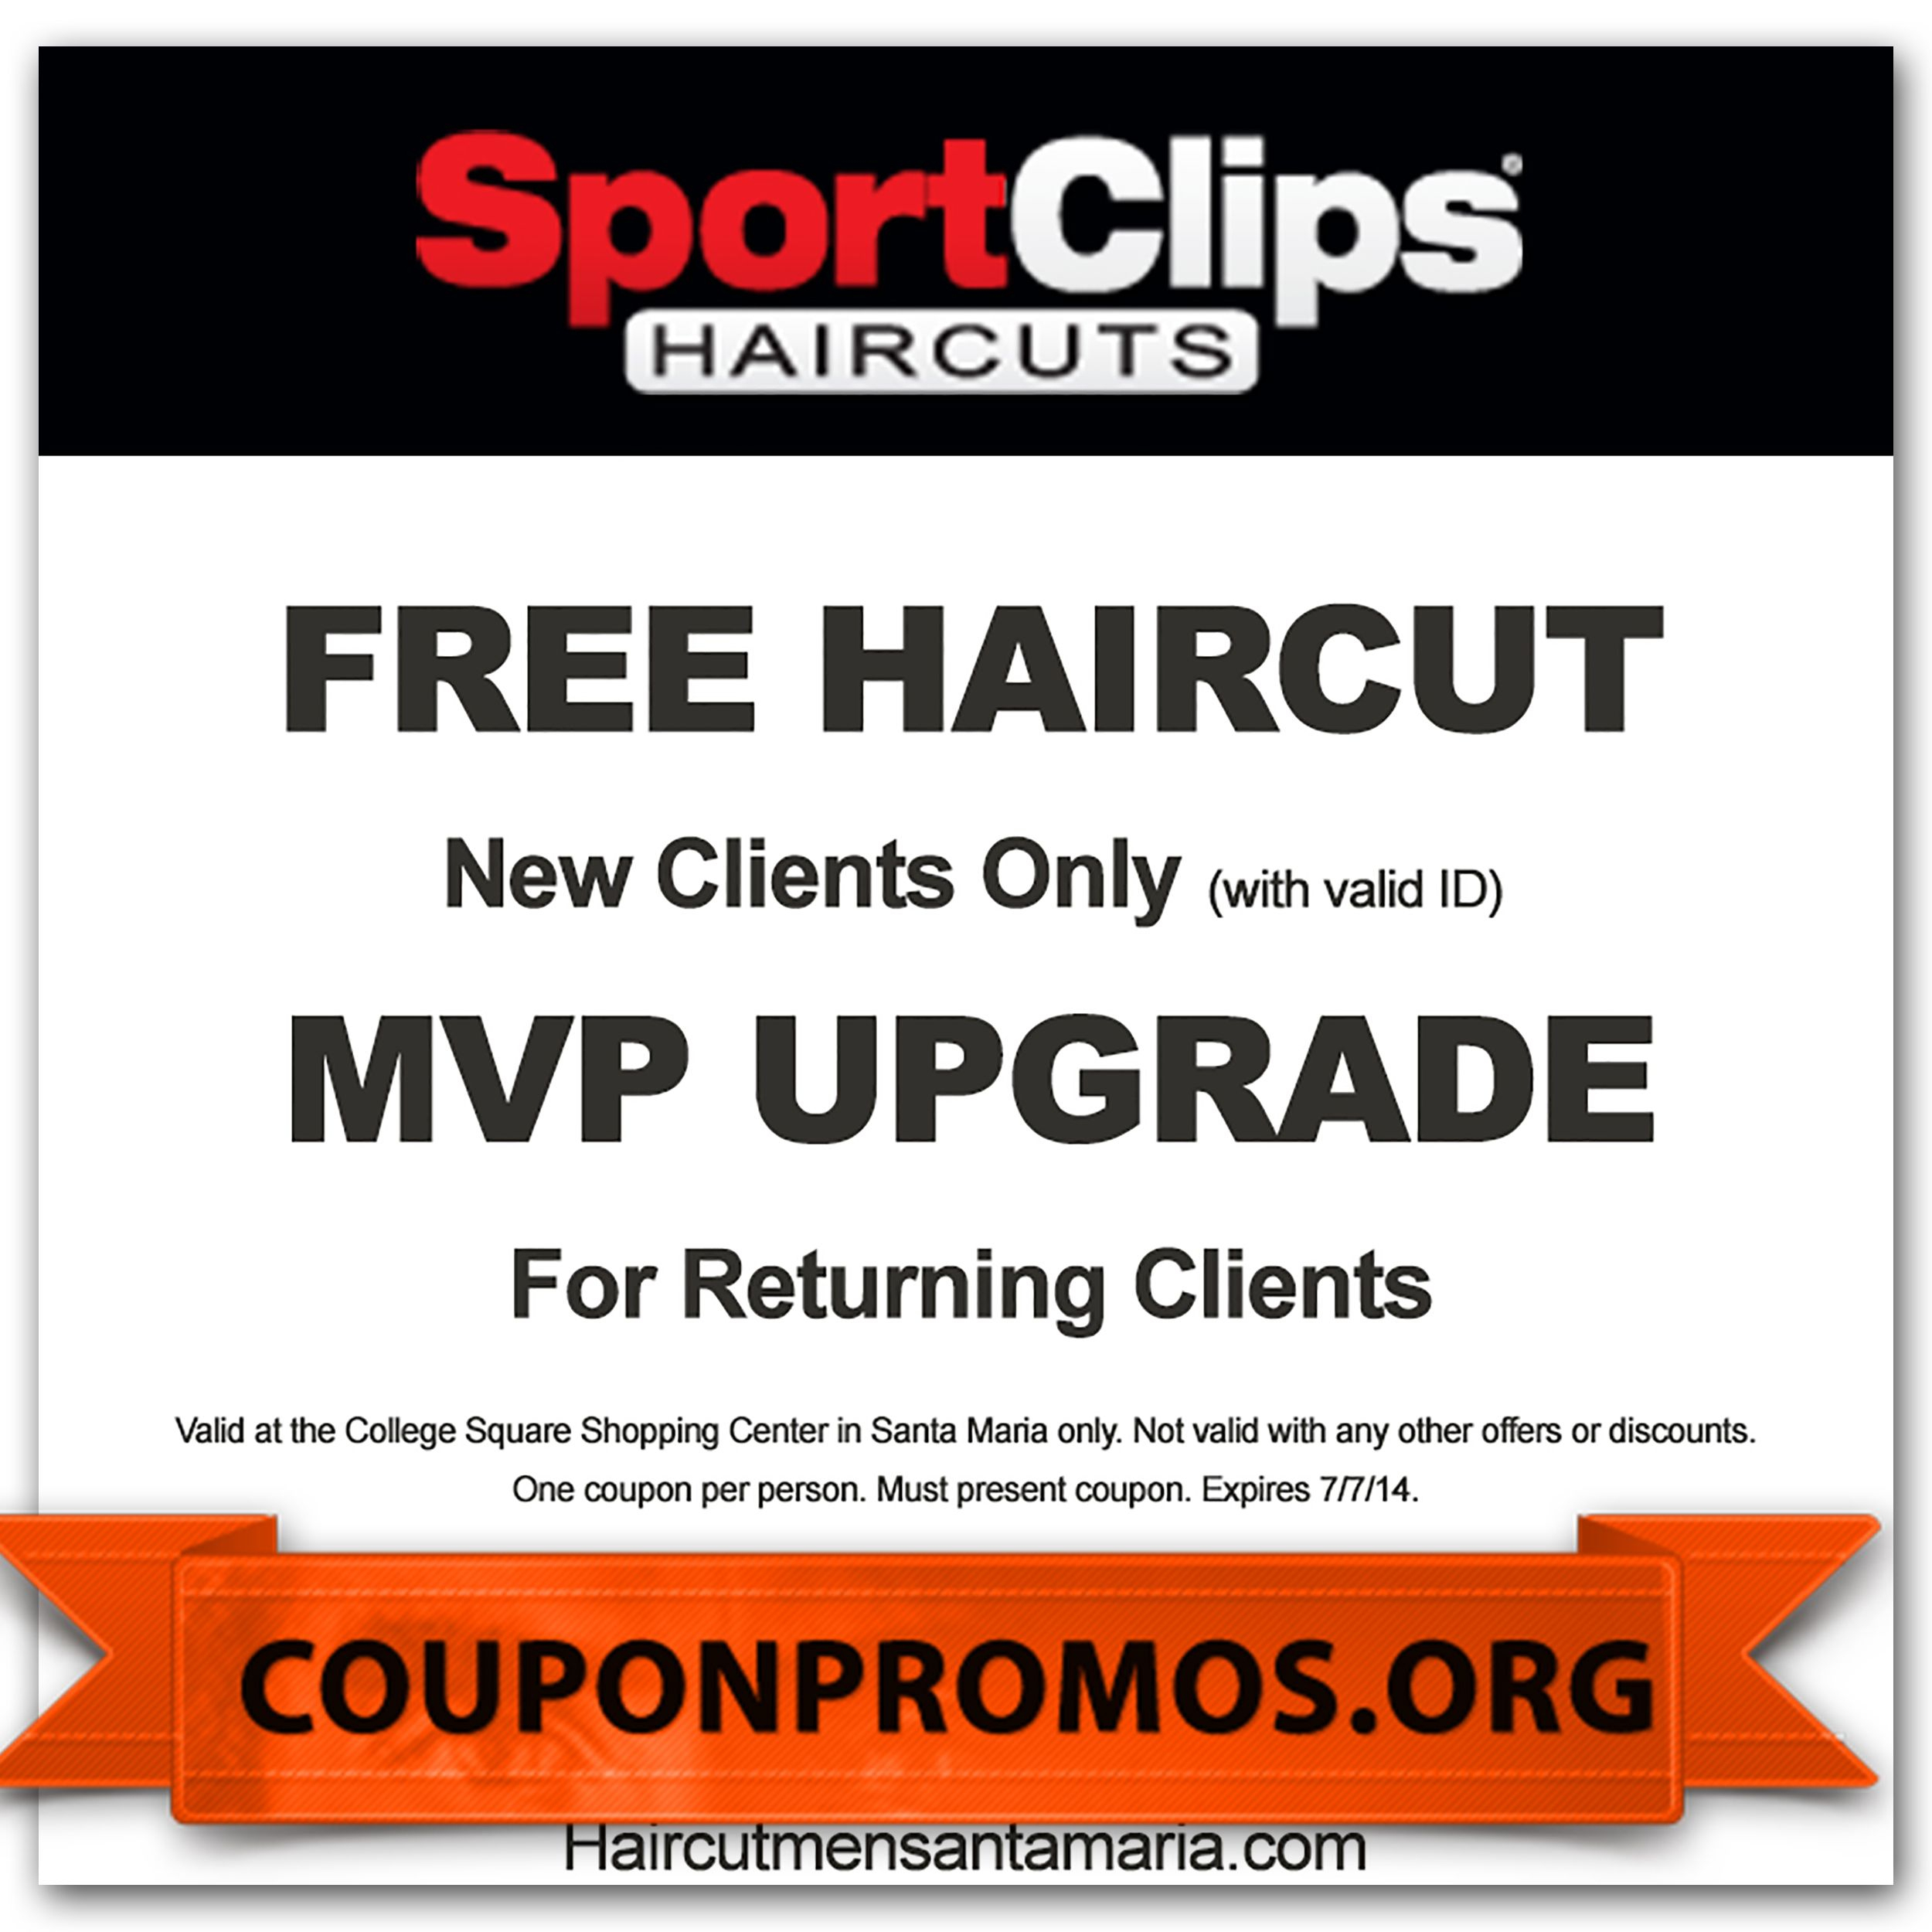 Sports Clips Coupons For November December | Coupons For Free - Sports Clips Free Haircut Printable Coupon